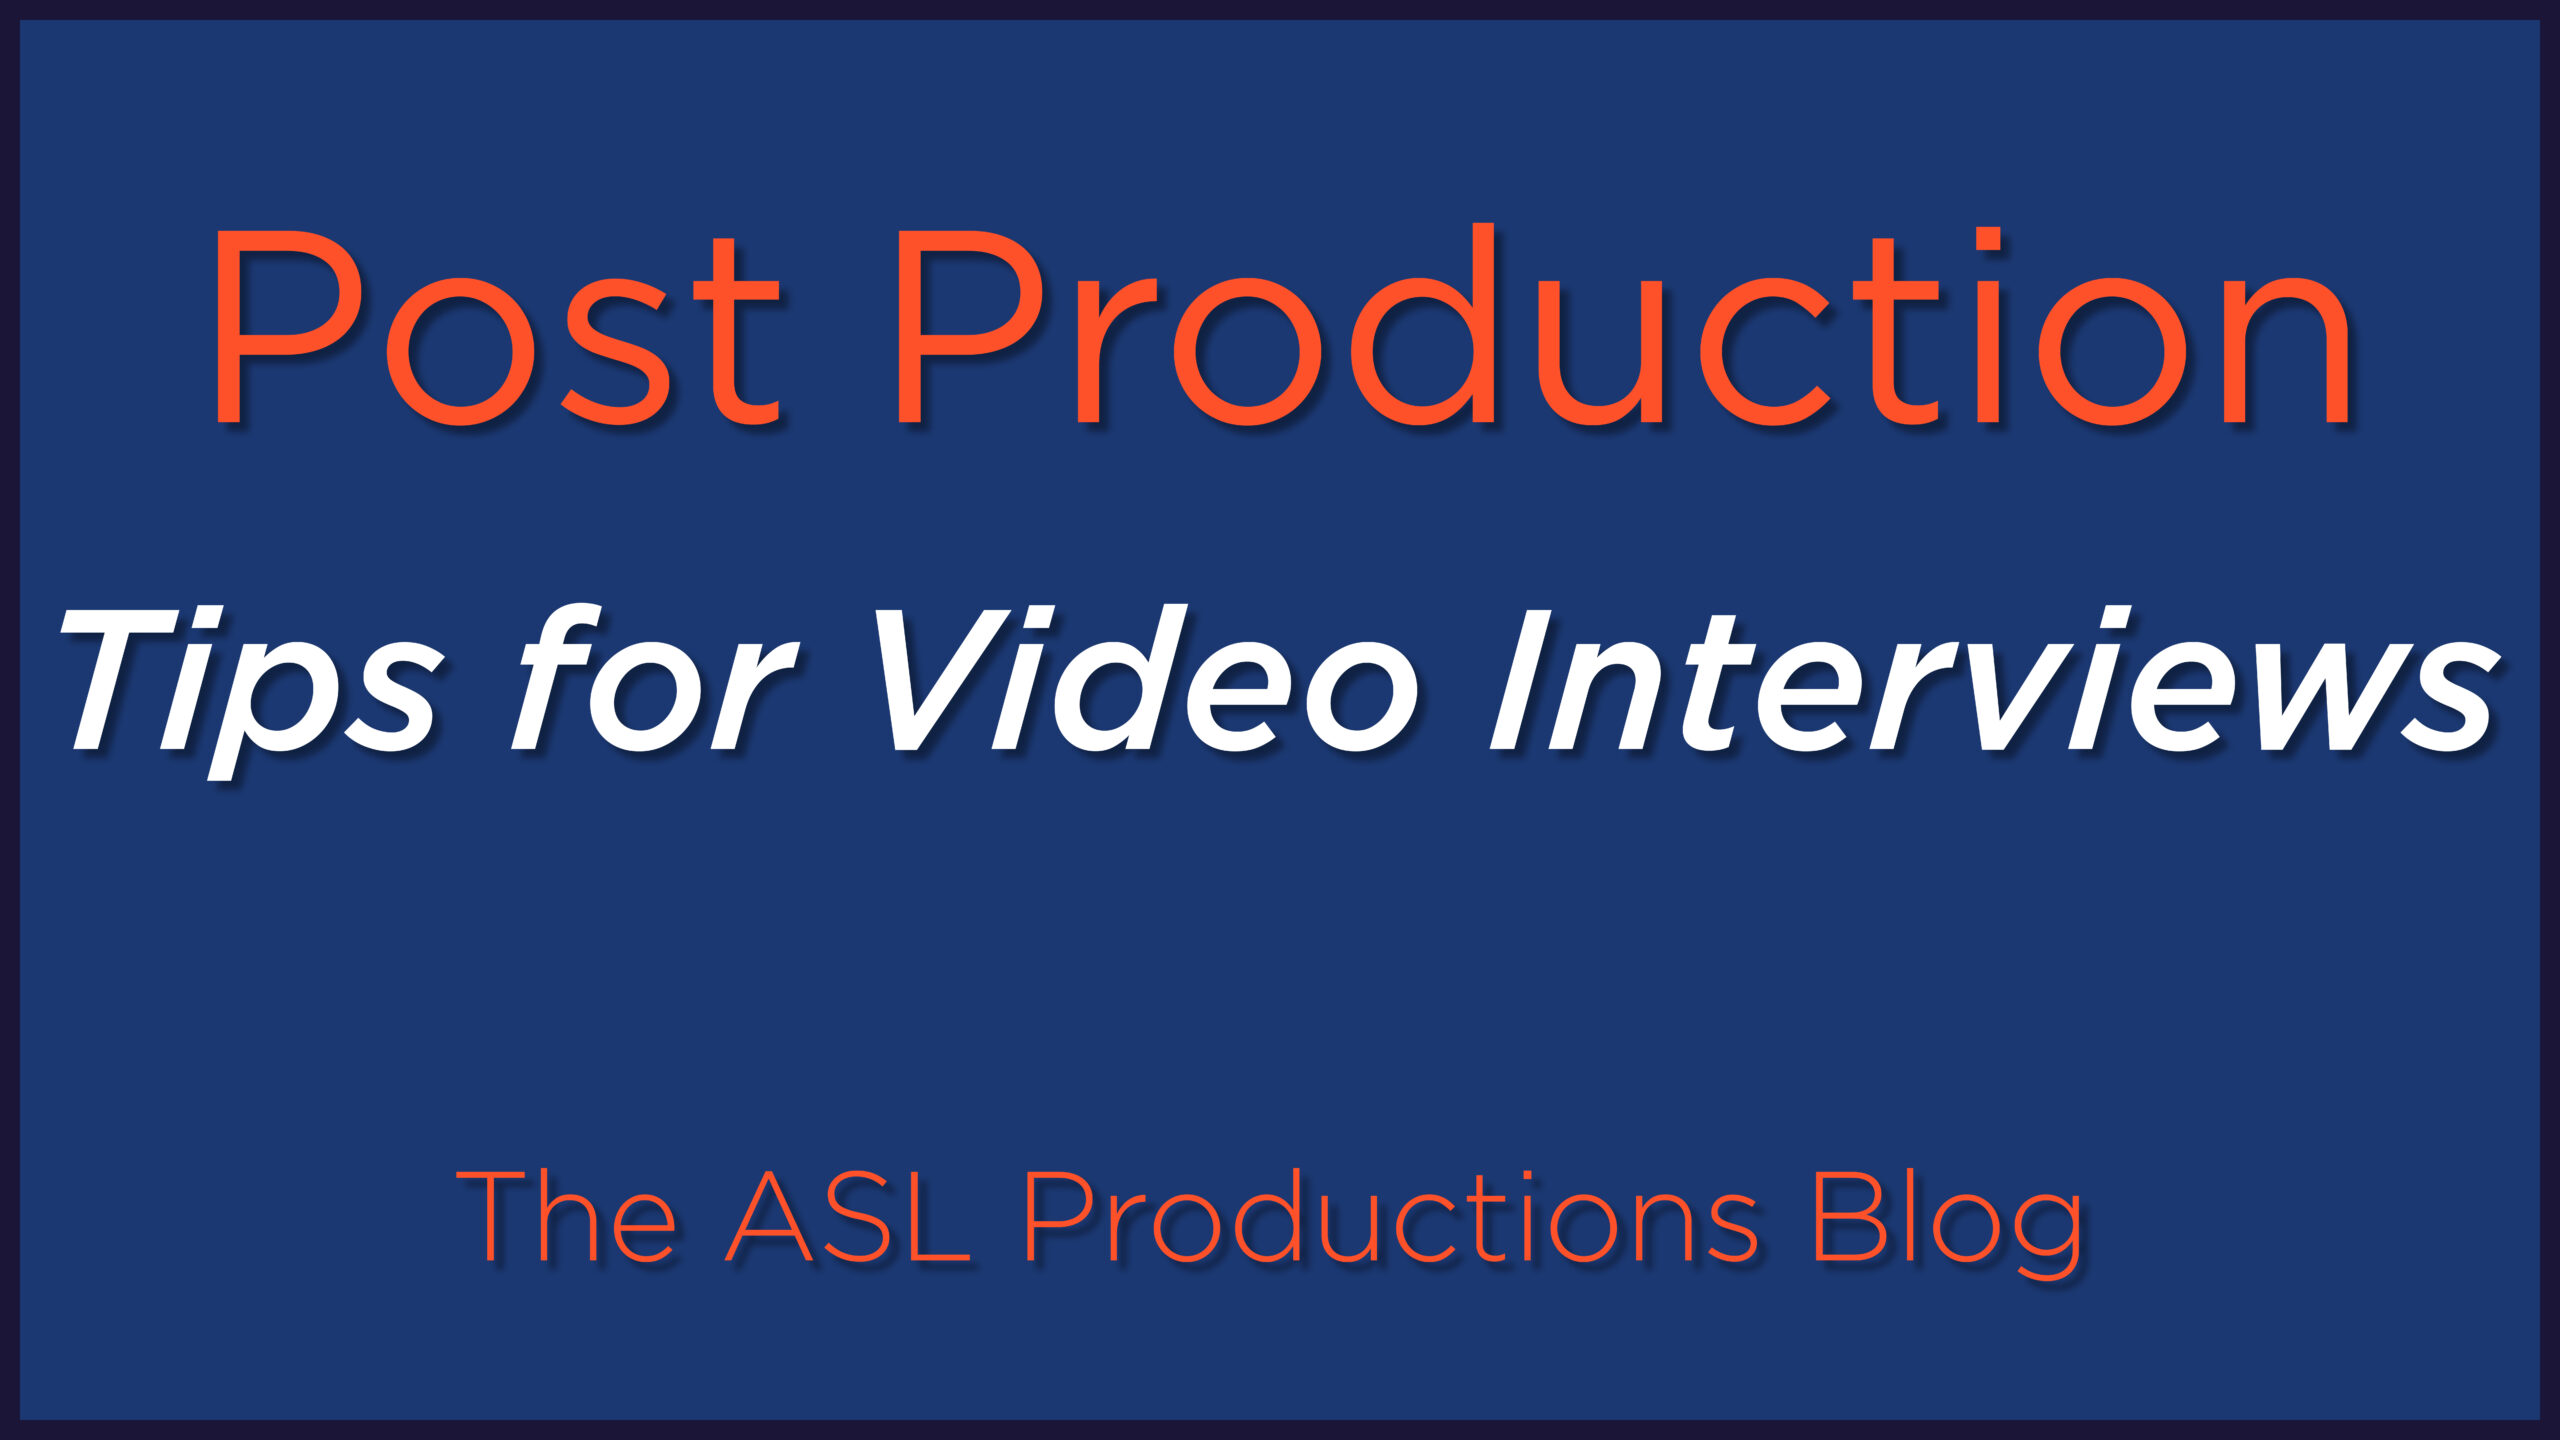 POST-PRODUCTION TIPS FOR VIDEO INTERVIEWS: TURNING A SERIES OF QUESTIONS INTO AN ENGAGING STORY